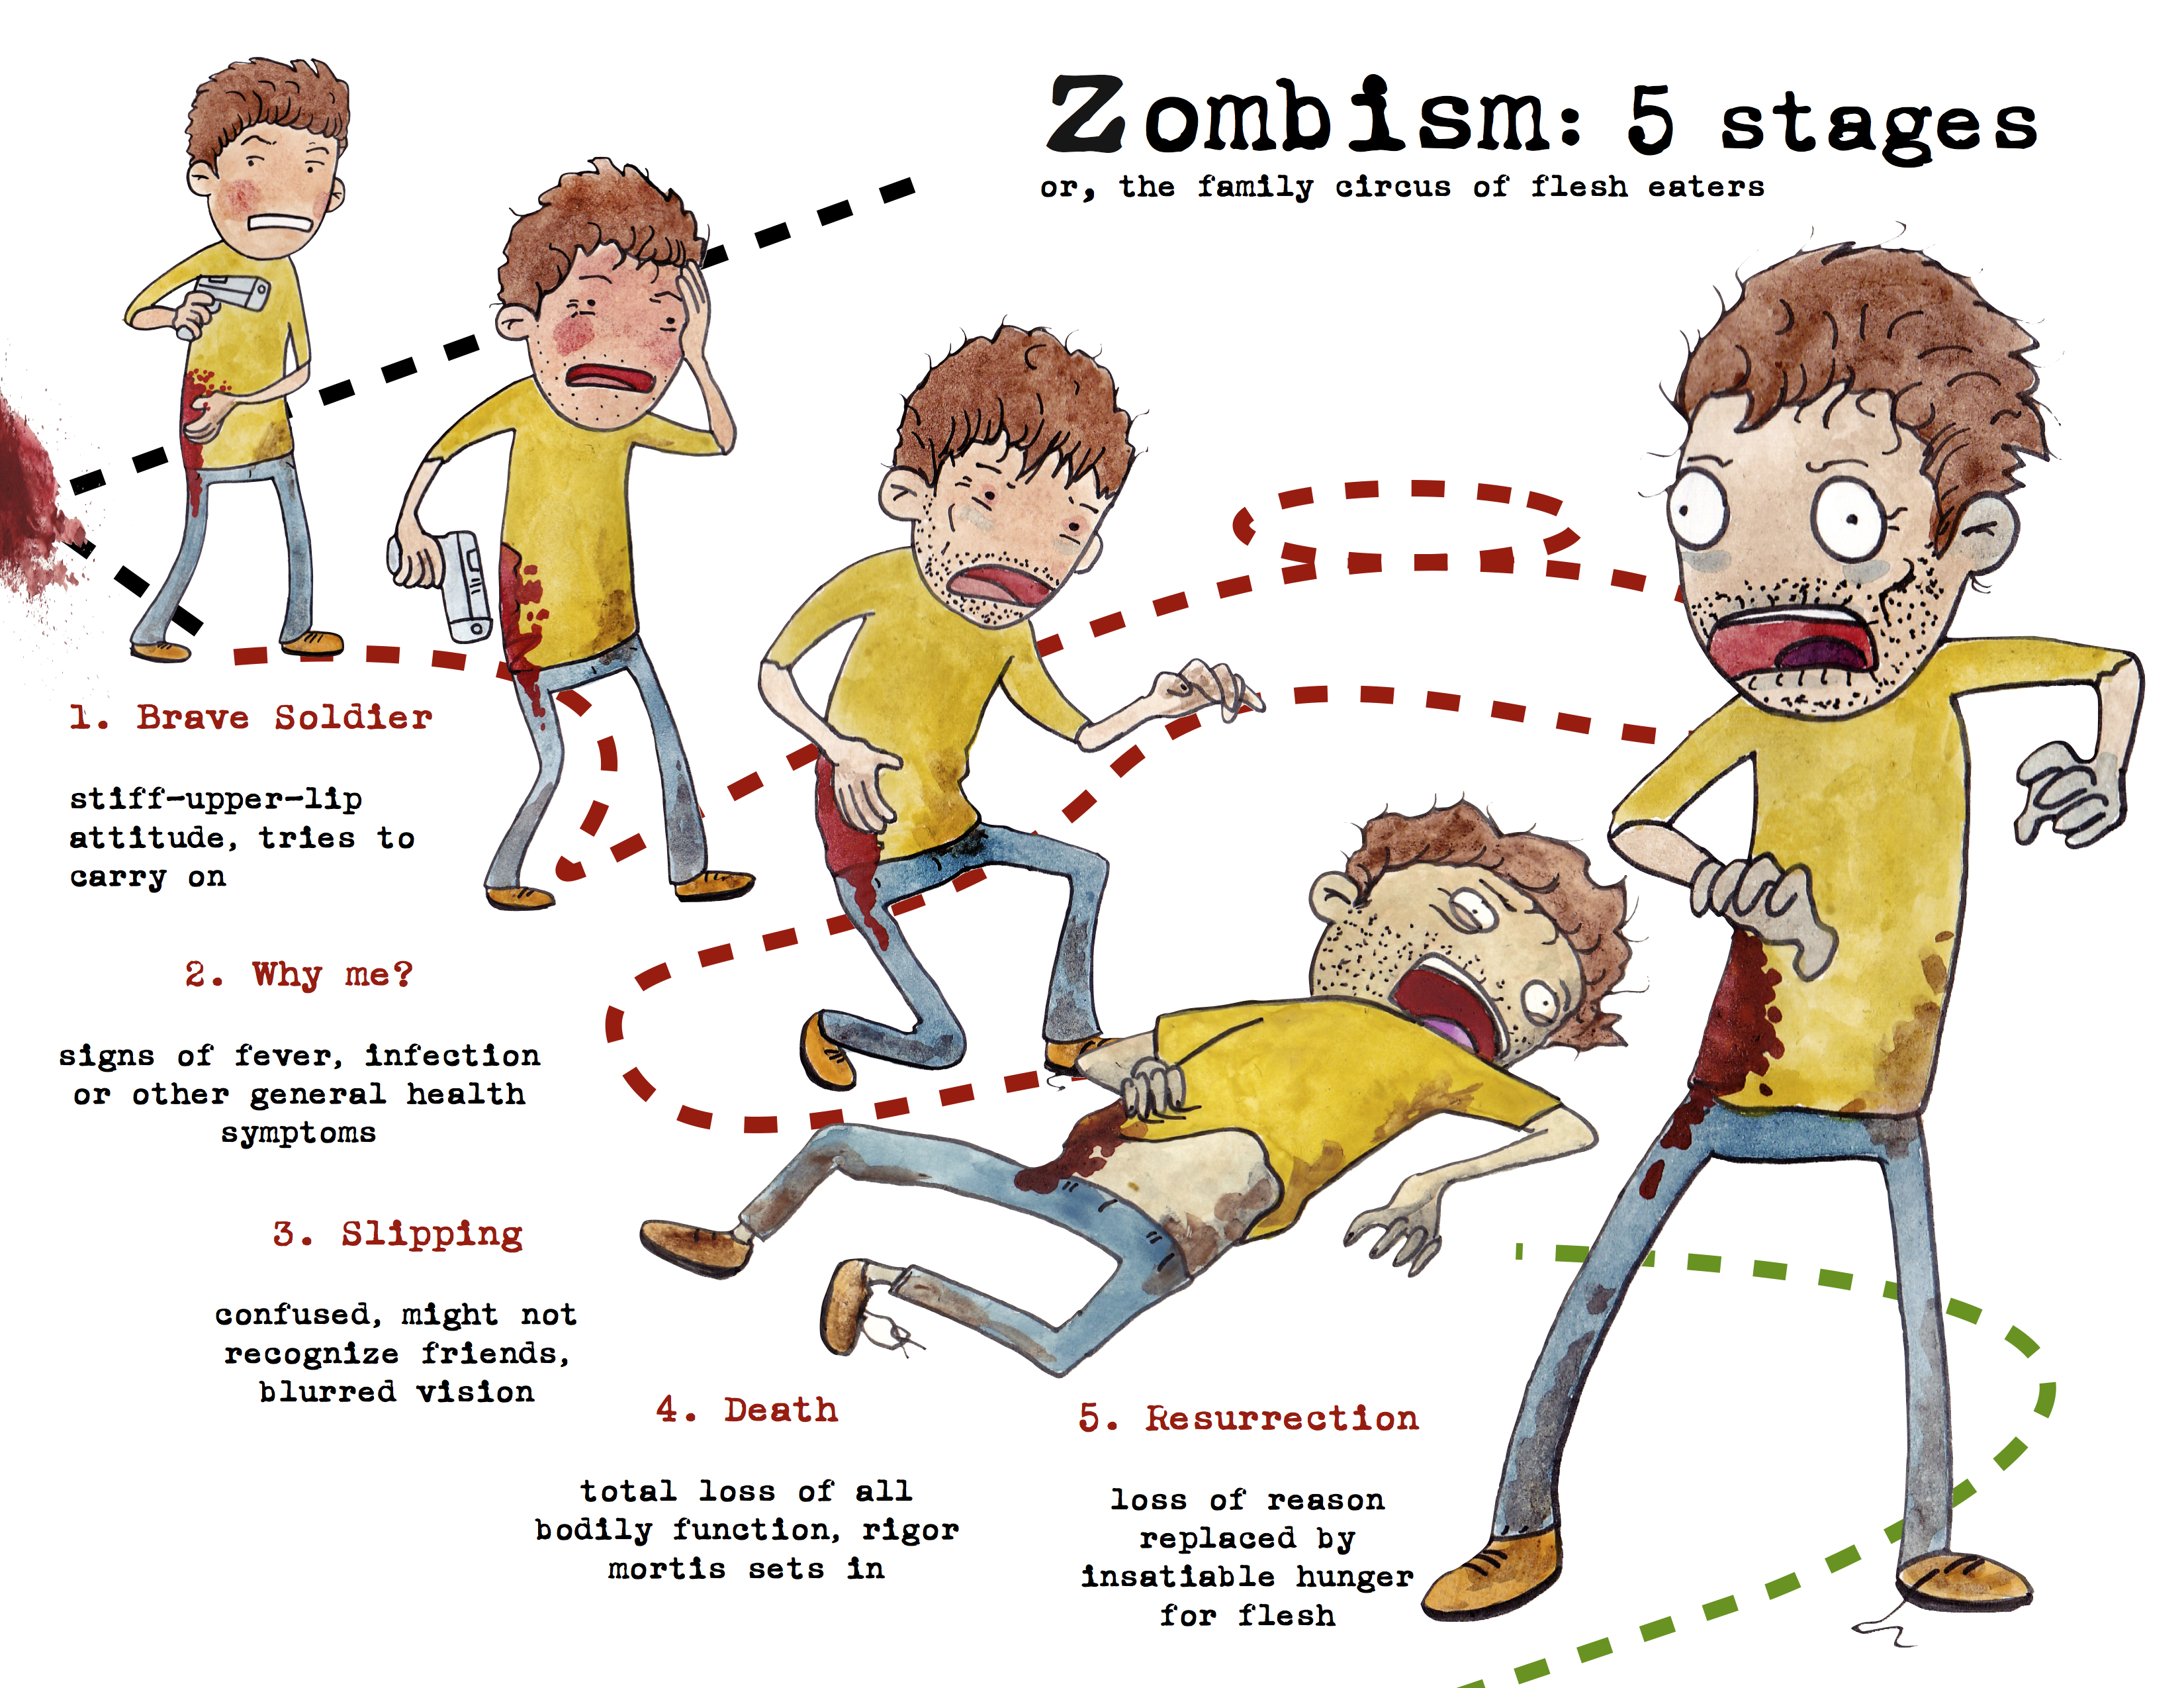 GUIDE TO ZOMBIE SURVIVAL EPUB